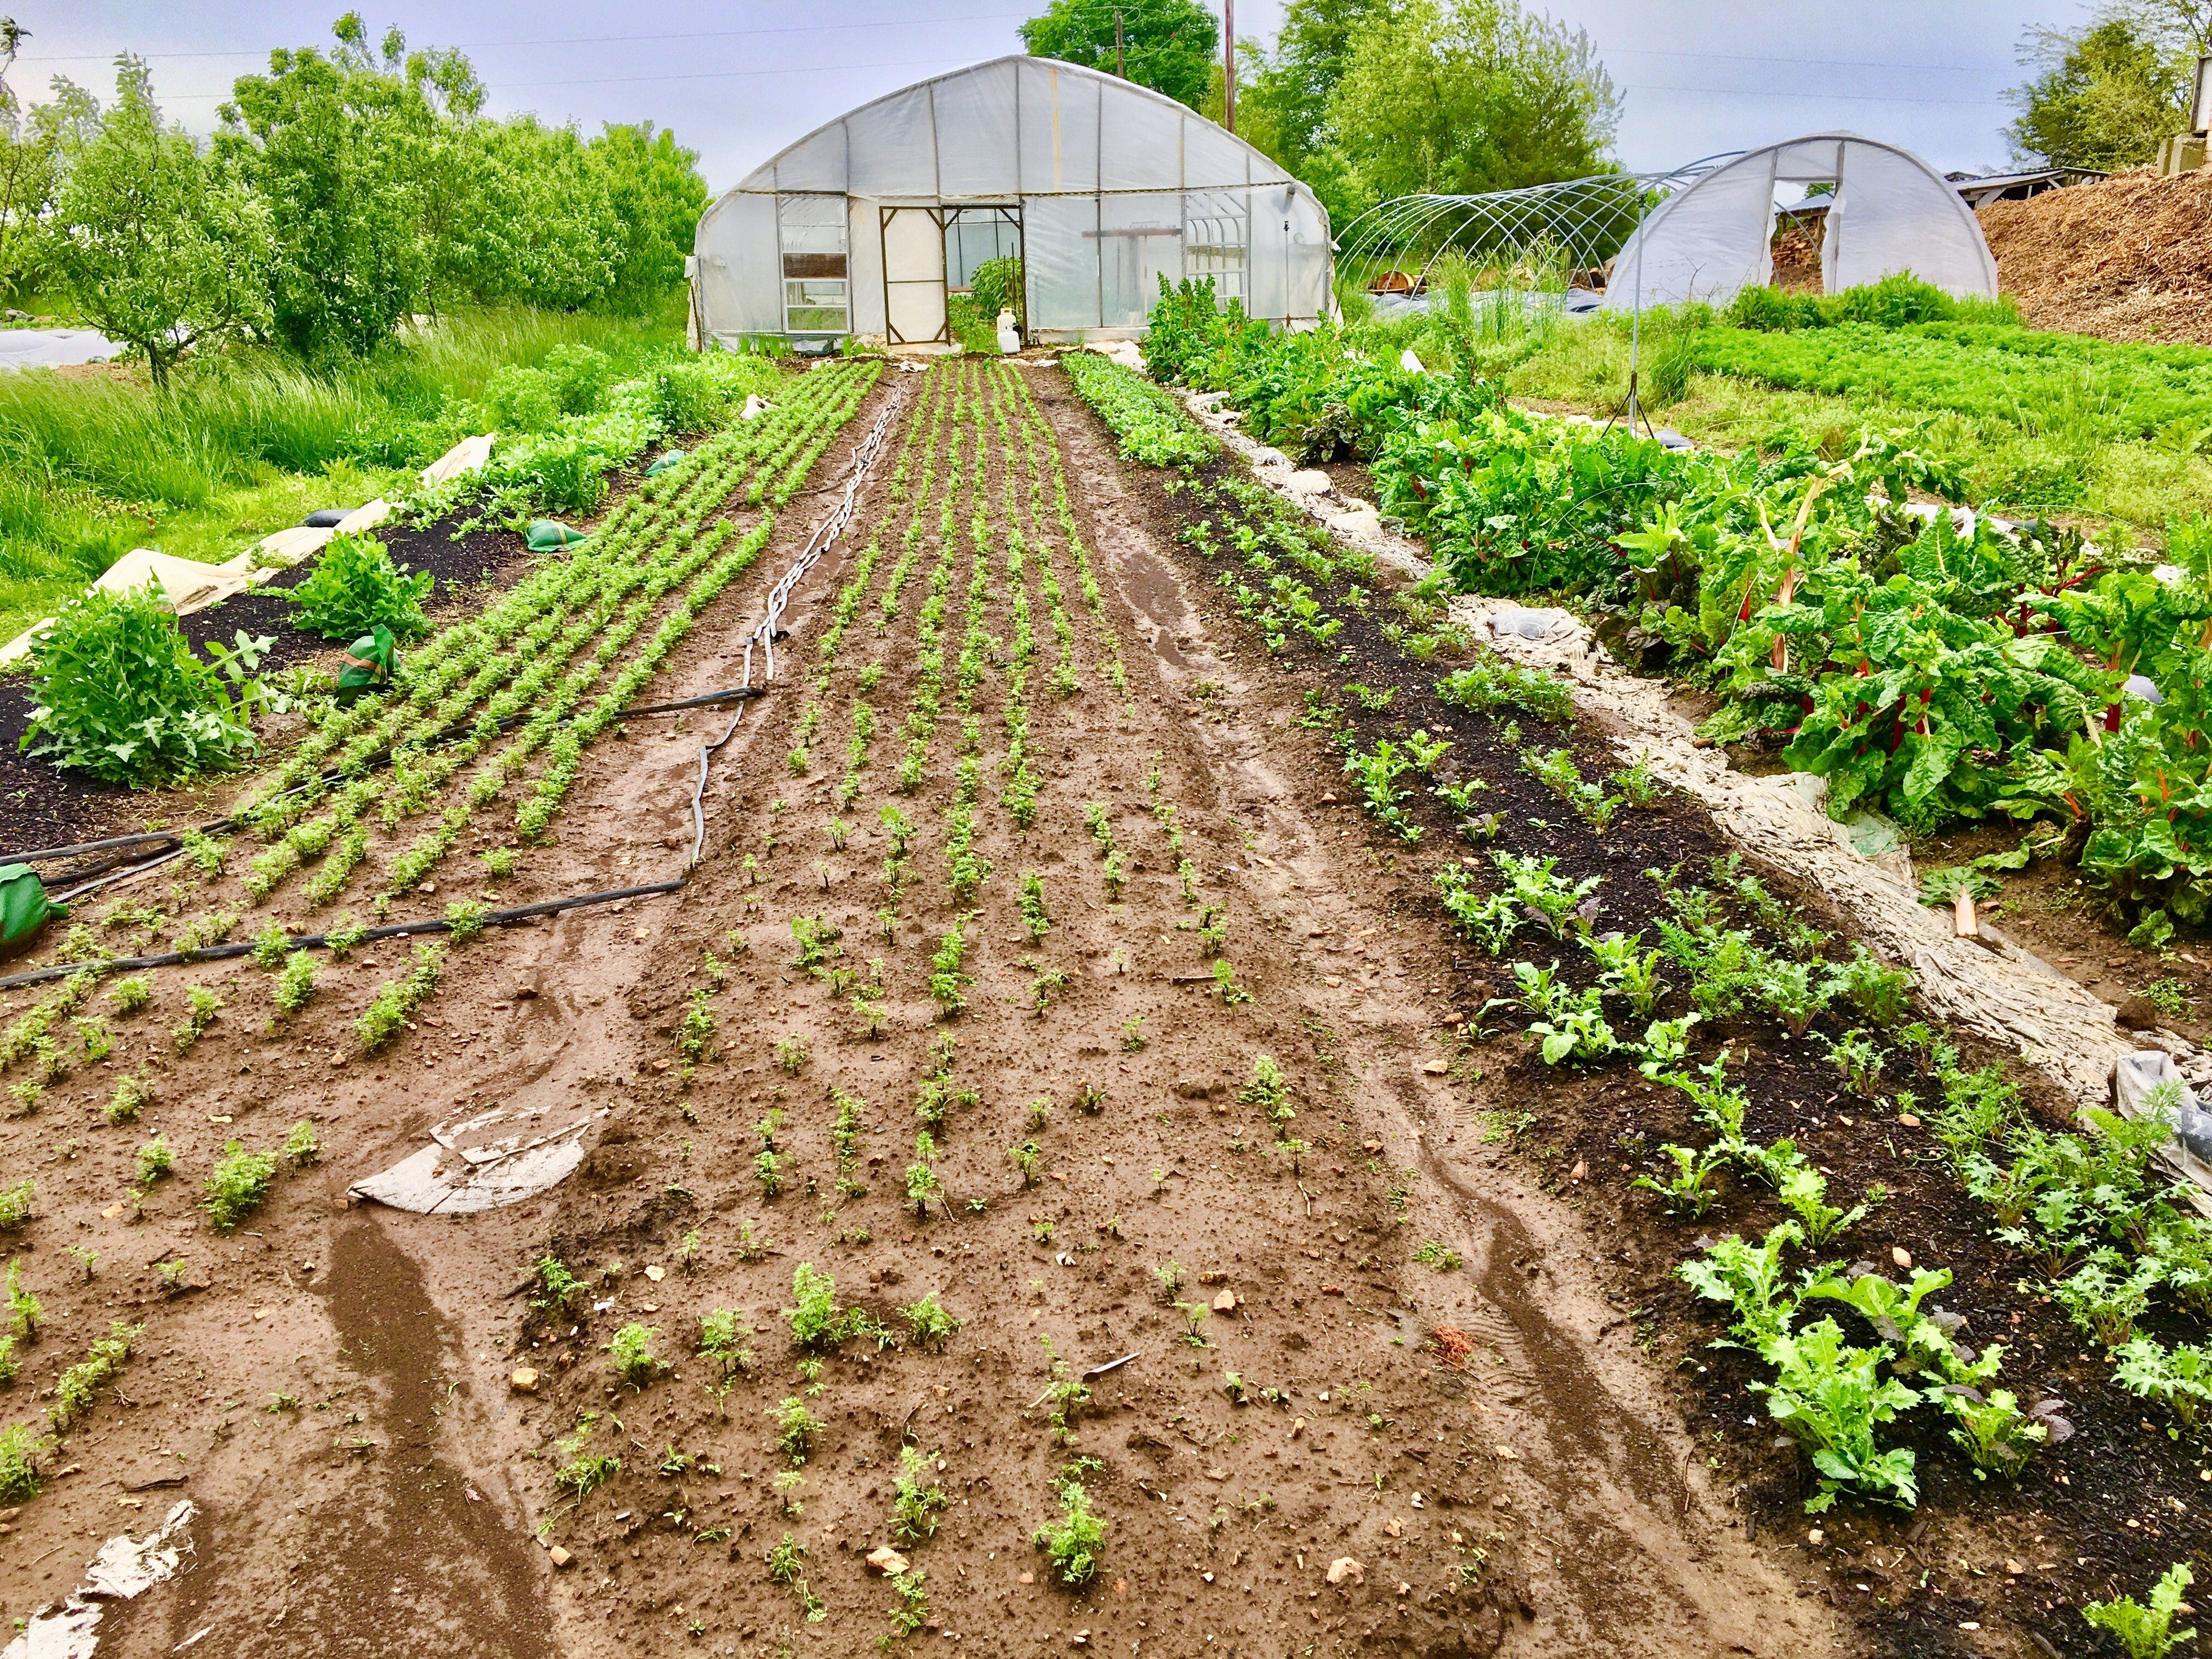 Next Happening: Farm Happenings for May 19, 2020